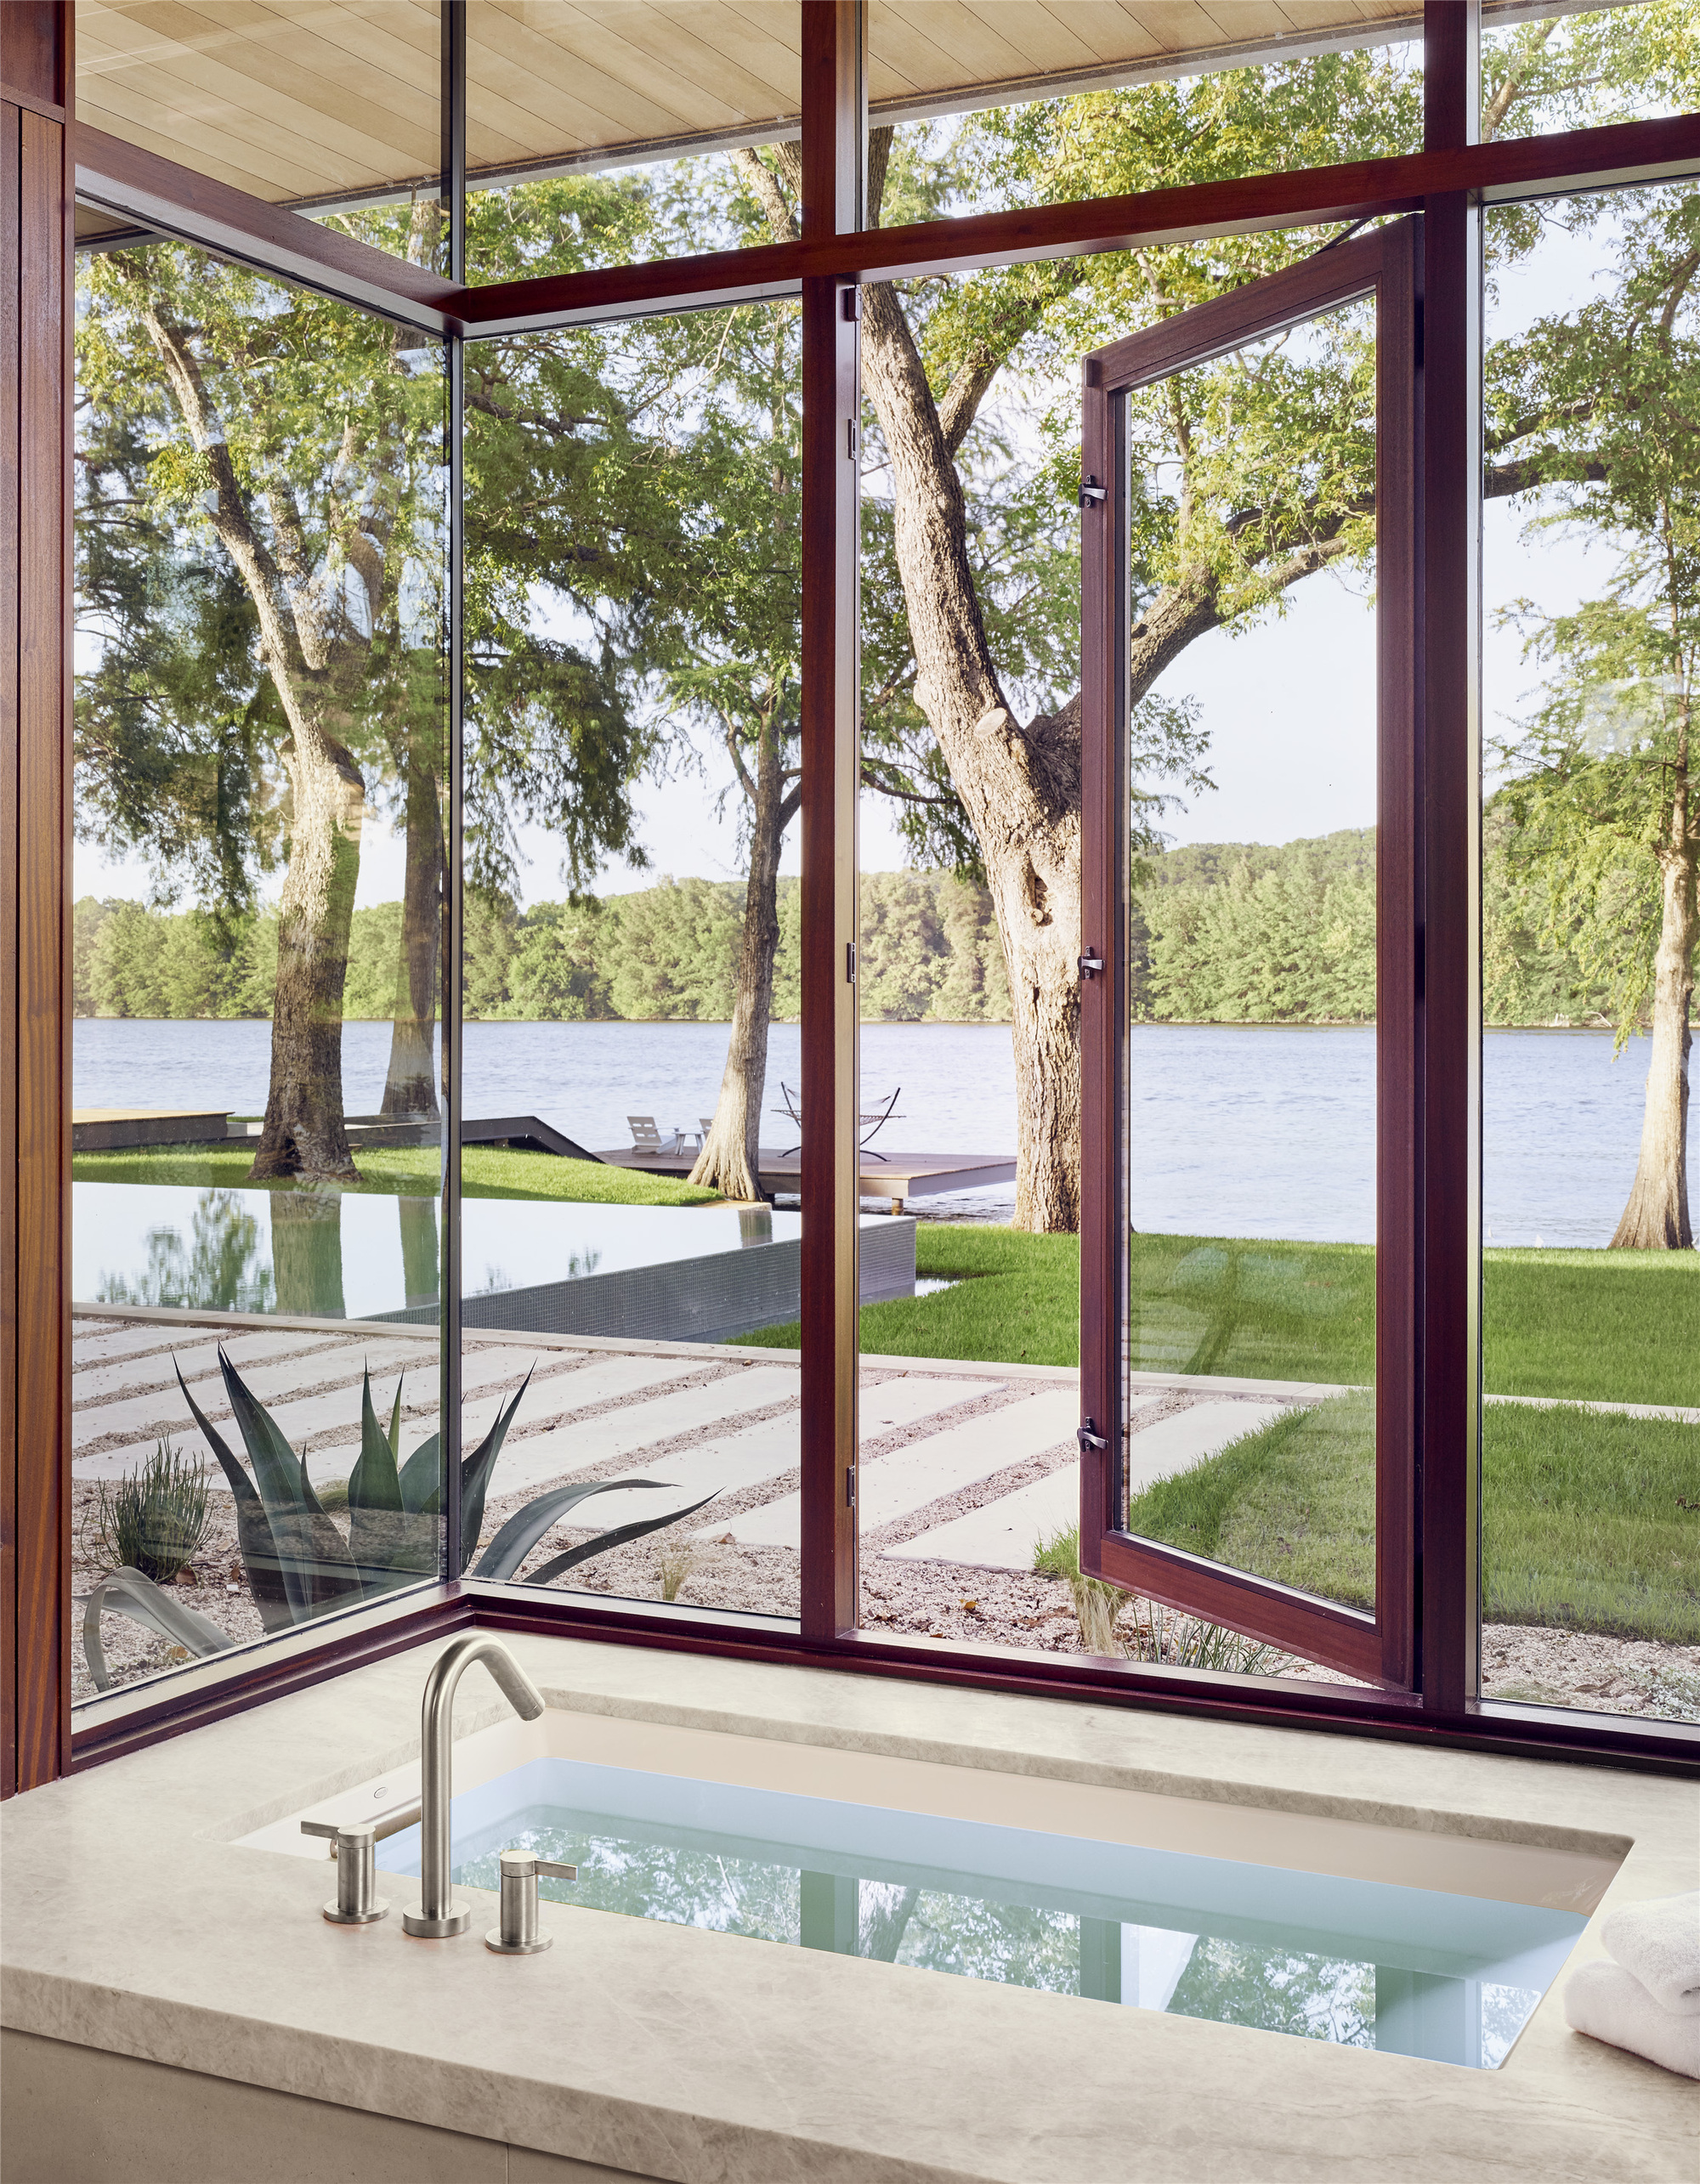 A Parallel Architecture gallery of lake austin residence / a parallel architecture - 12